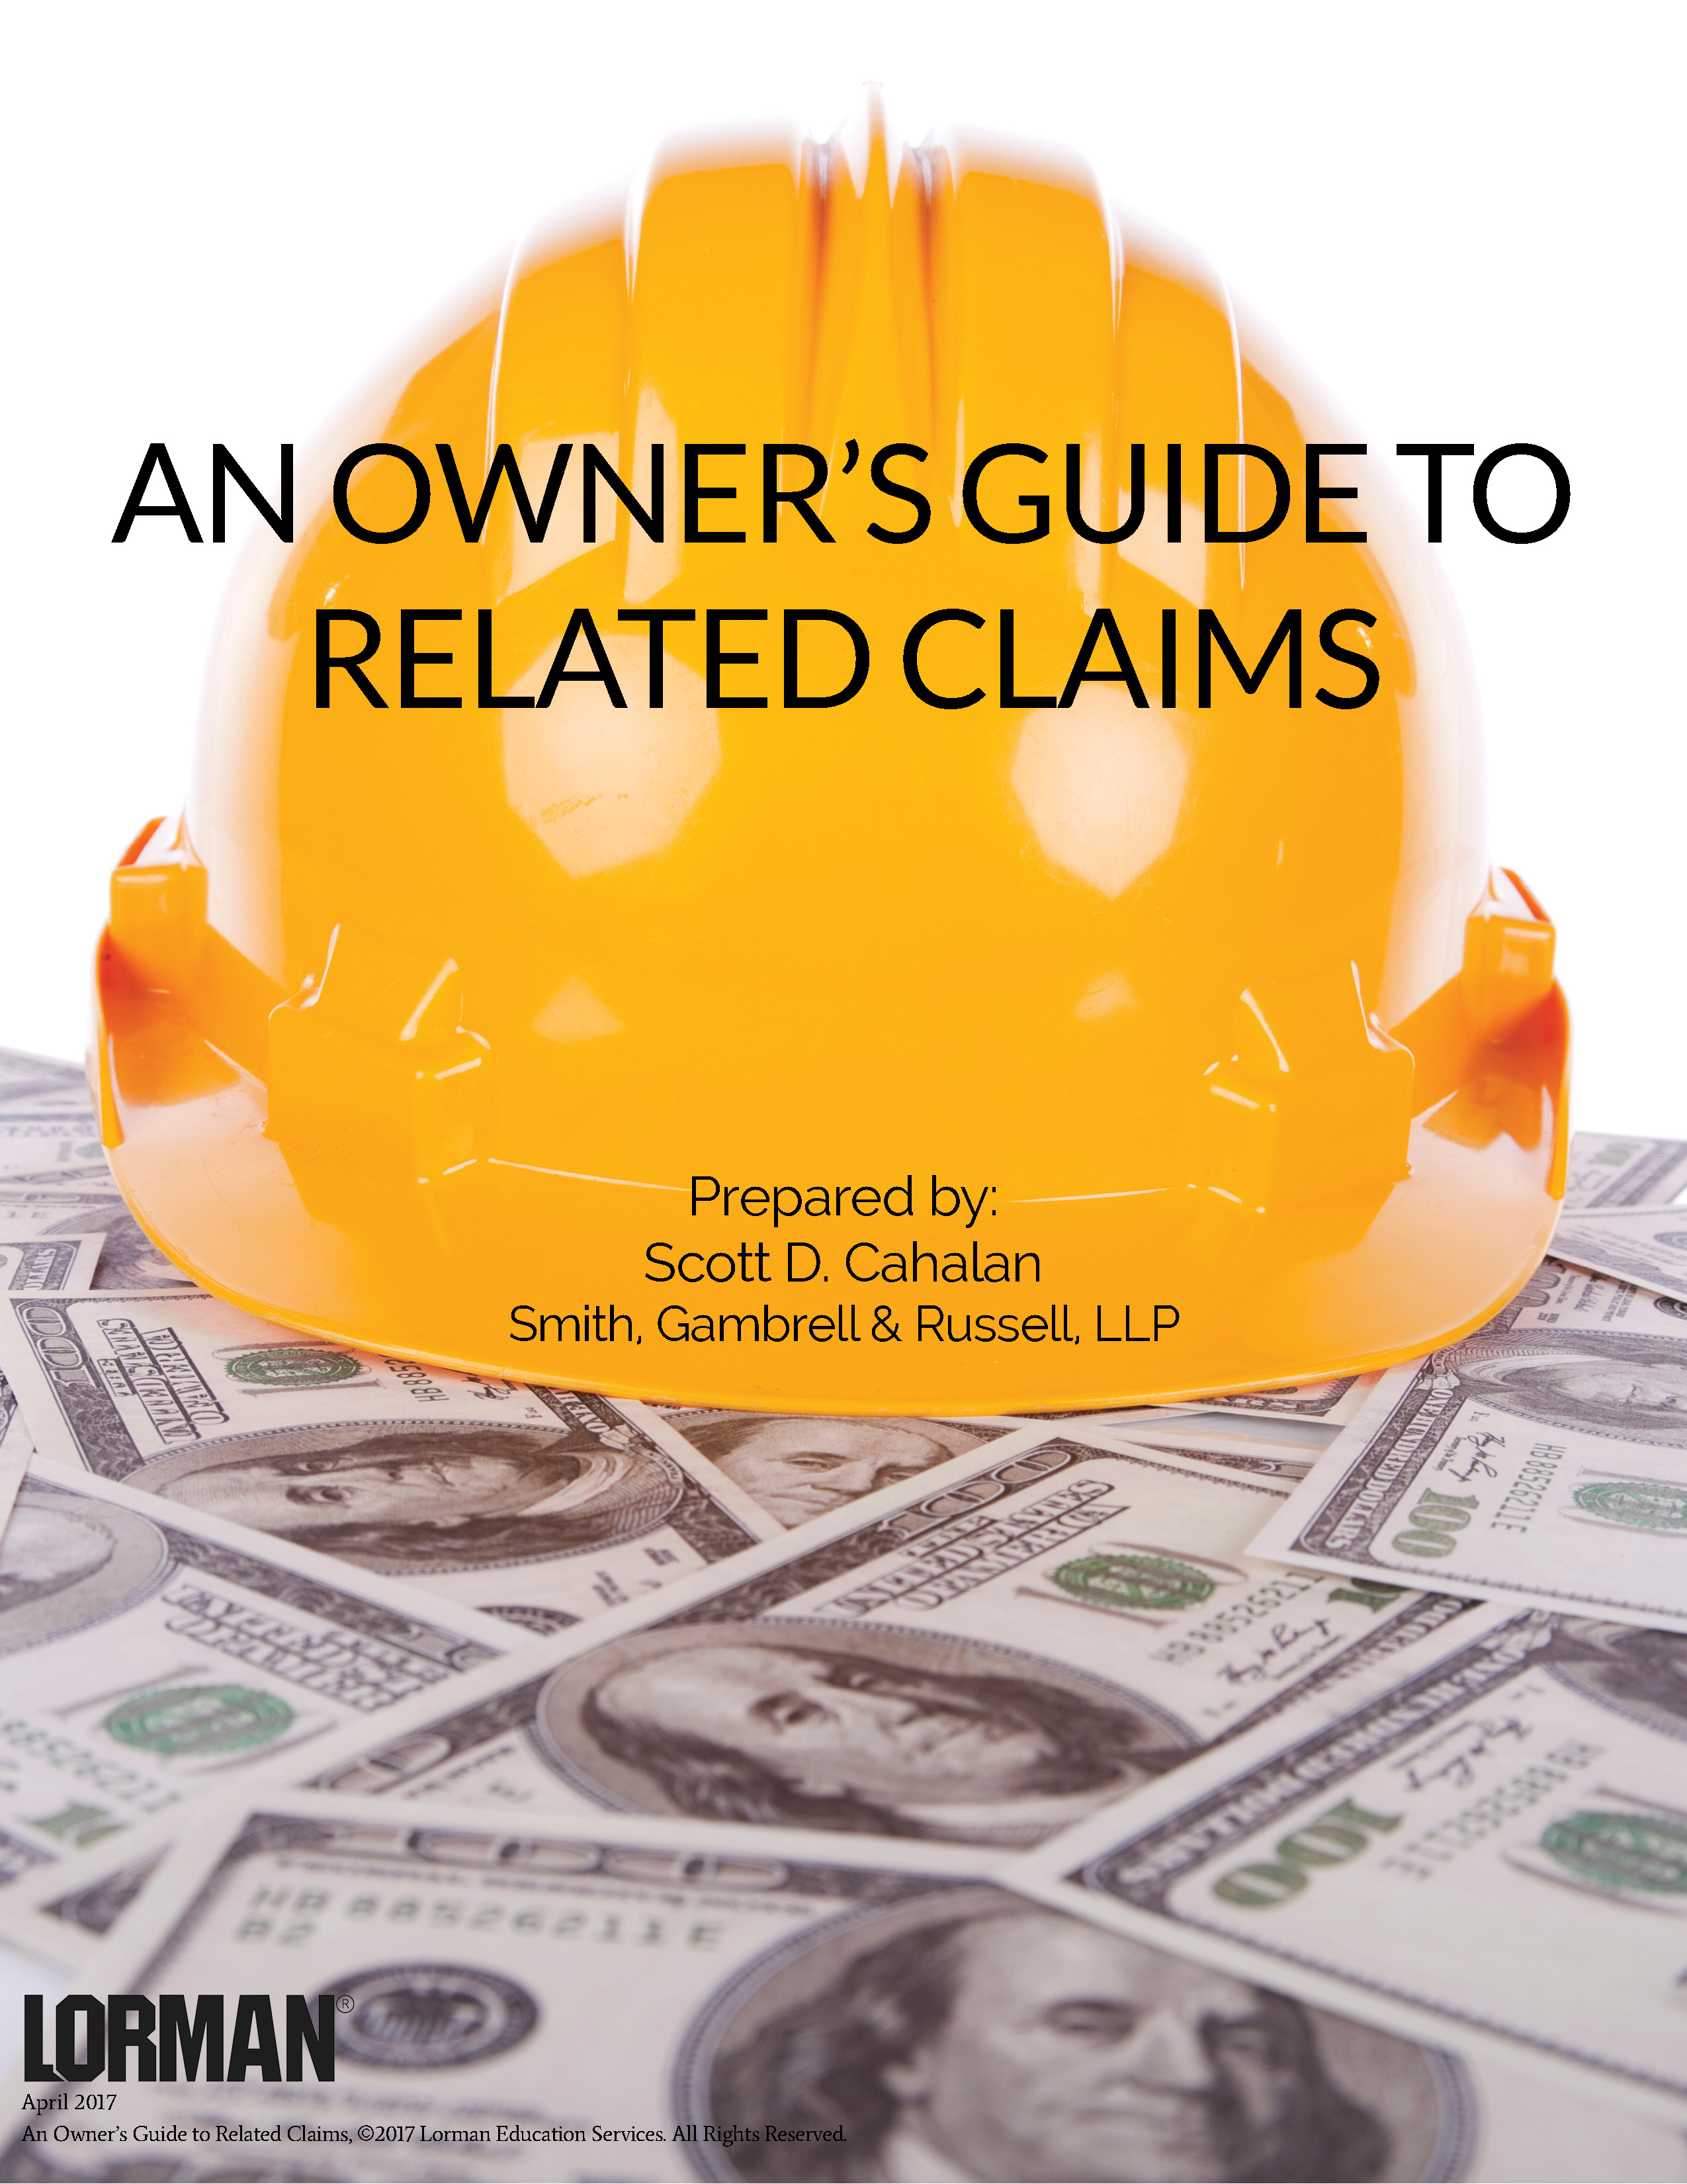 An Owner's Guide to Related Claims